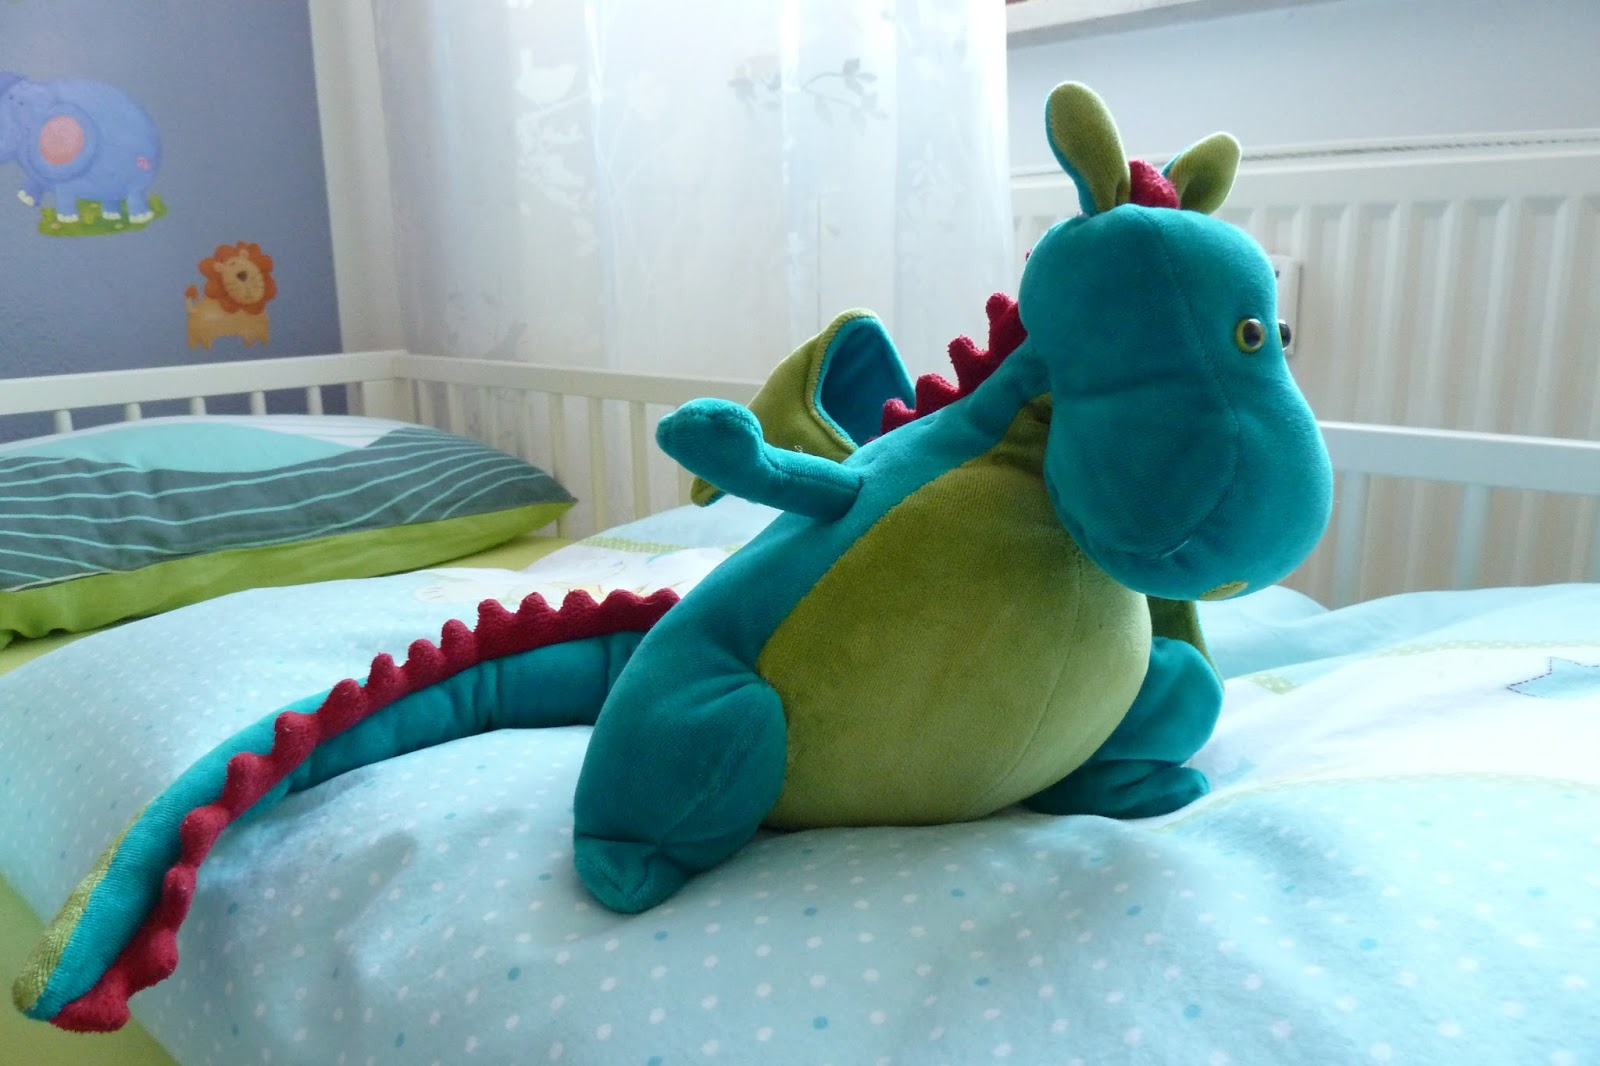 Attractive Drachen Muster Nähen Image Collection - Decke Stricken ...